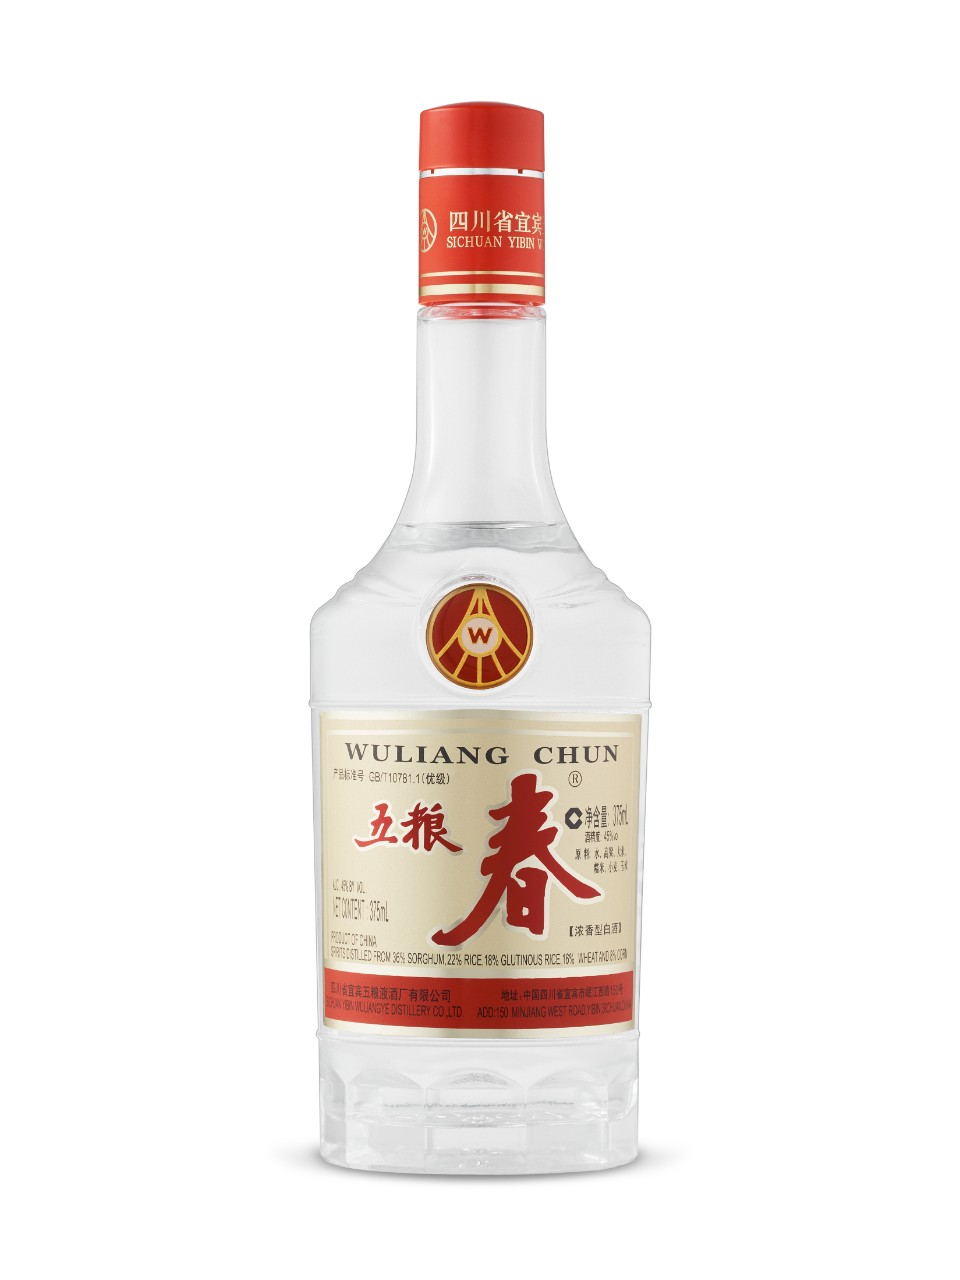 Image for Wuliang Chun from LCBO